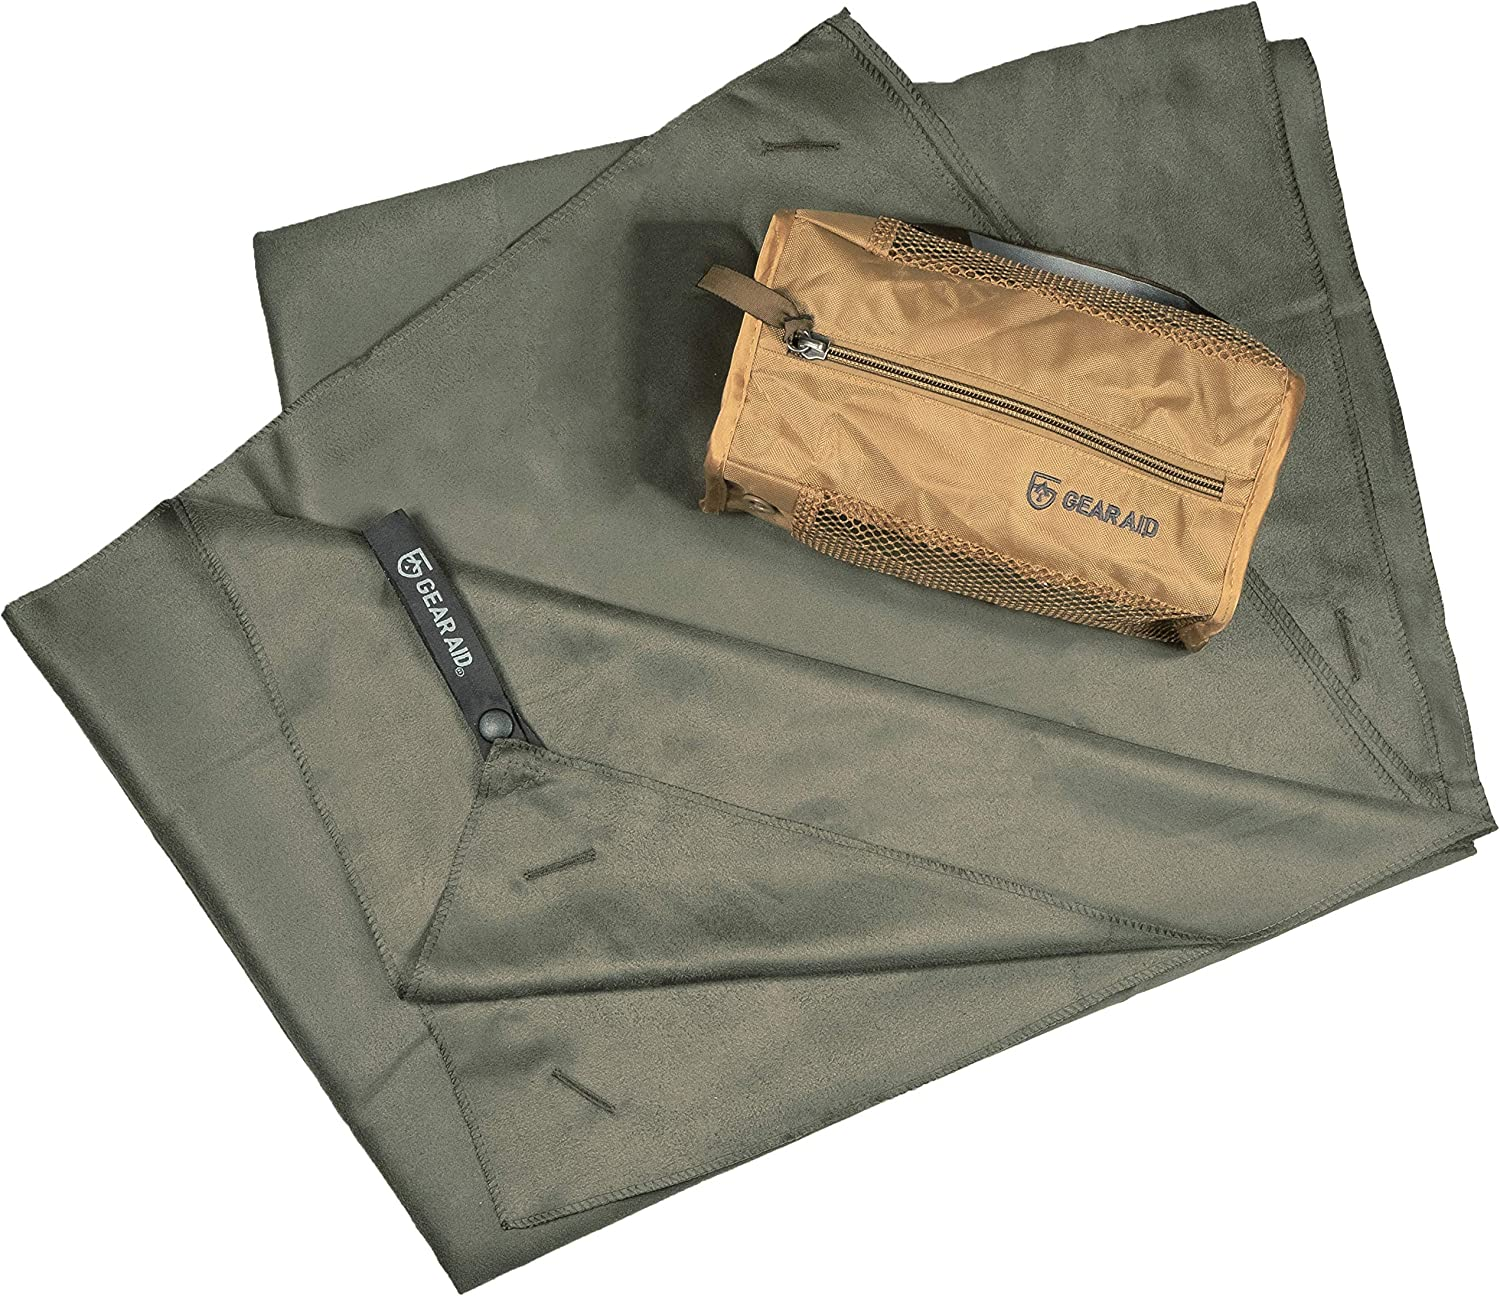 35x62 Travel and Camping XL X-Large Gear Aid Unisexs 44035 Quick Dry Microfiber Towel for The Gym Olive Drab OD Green